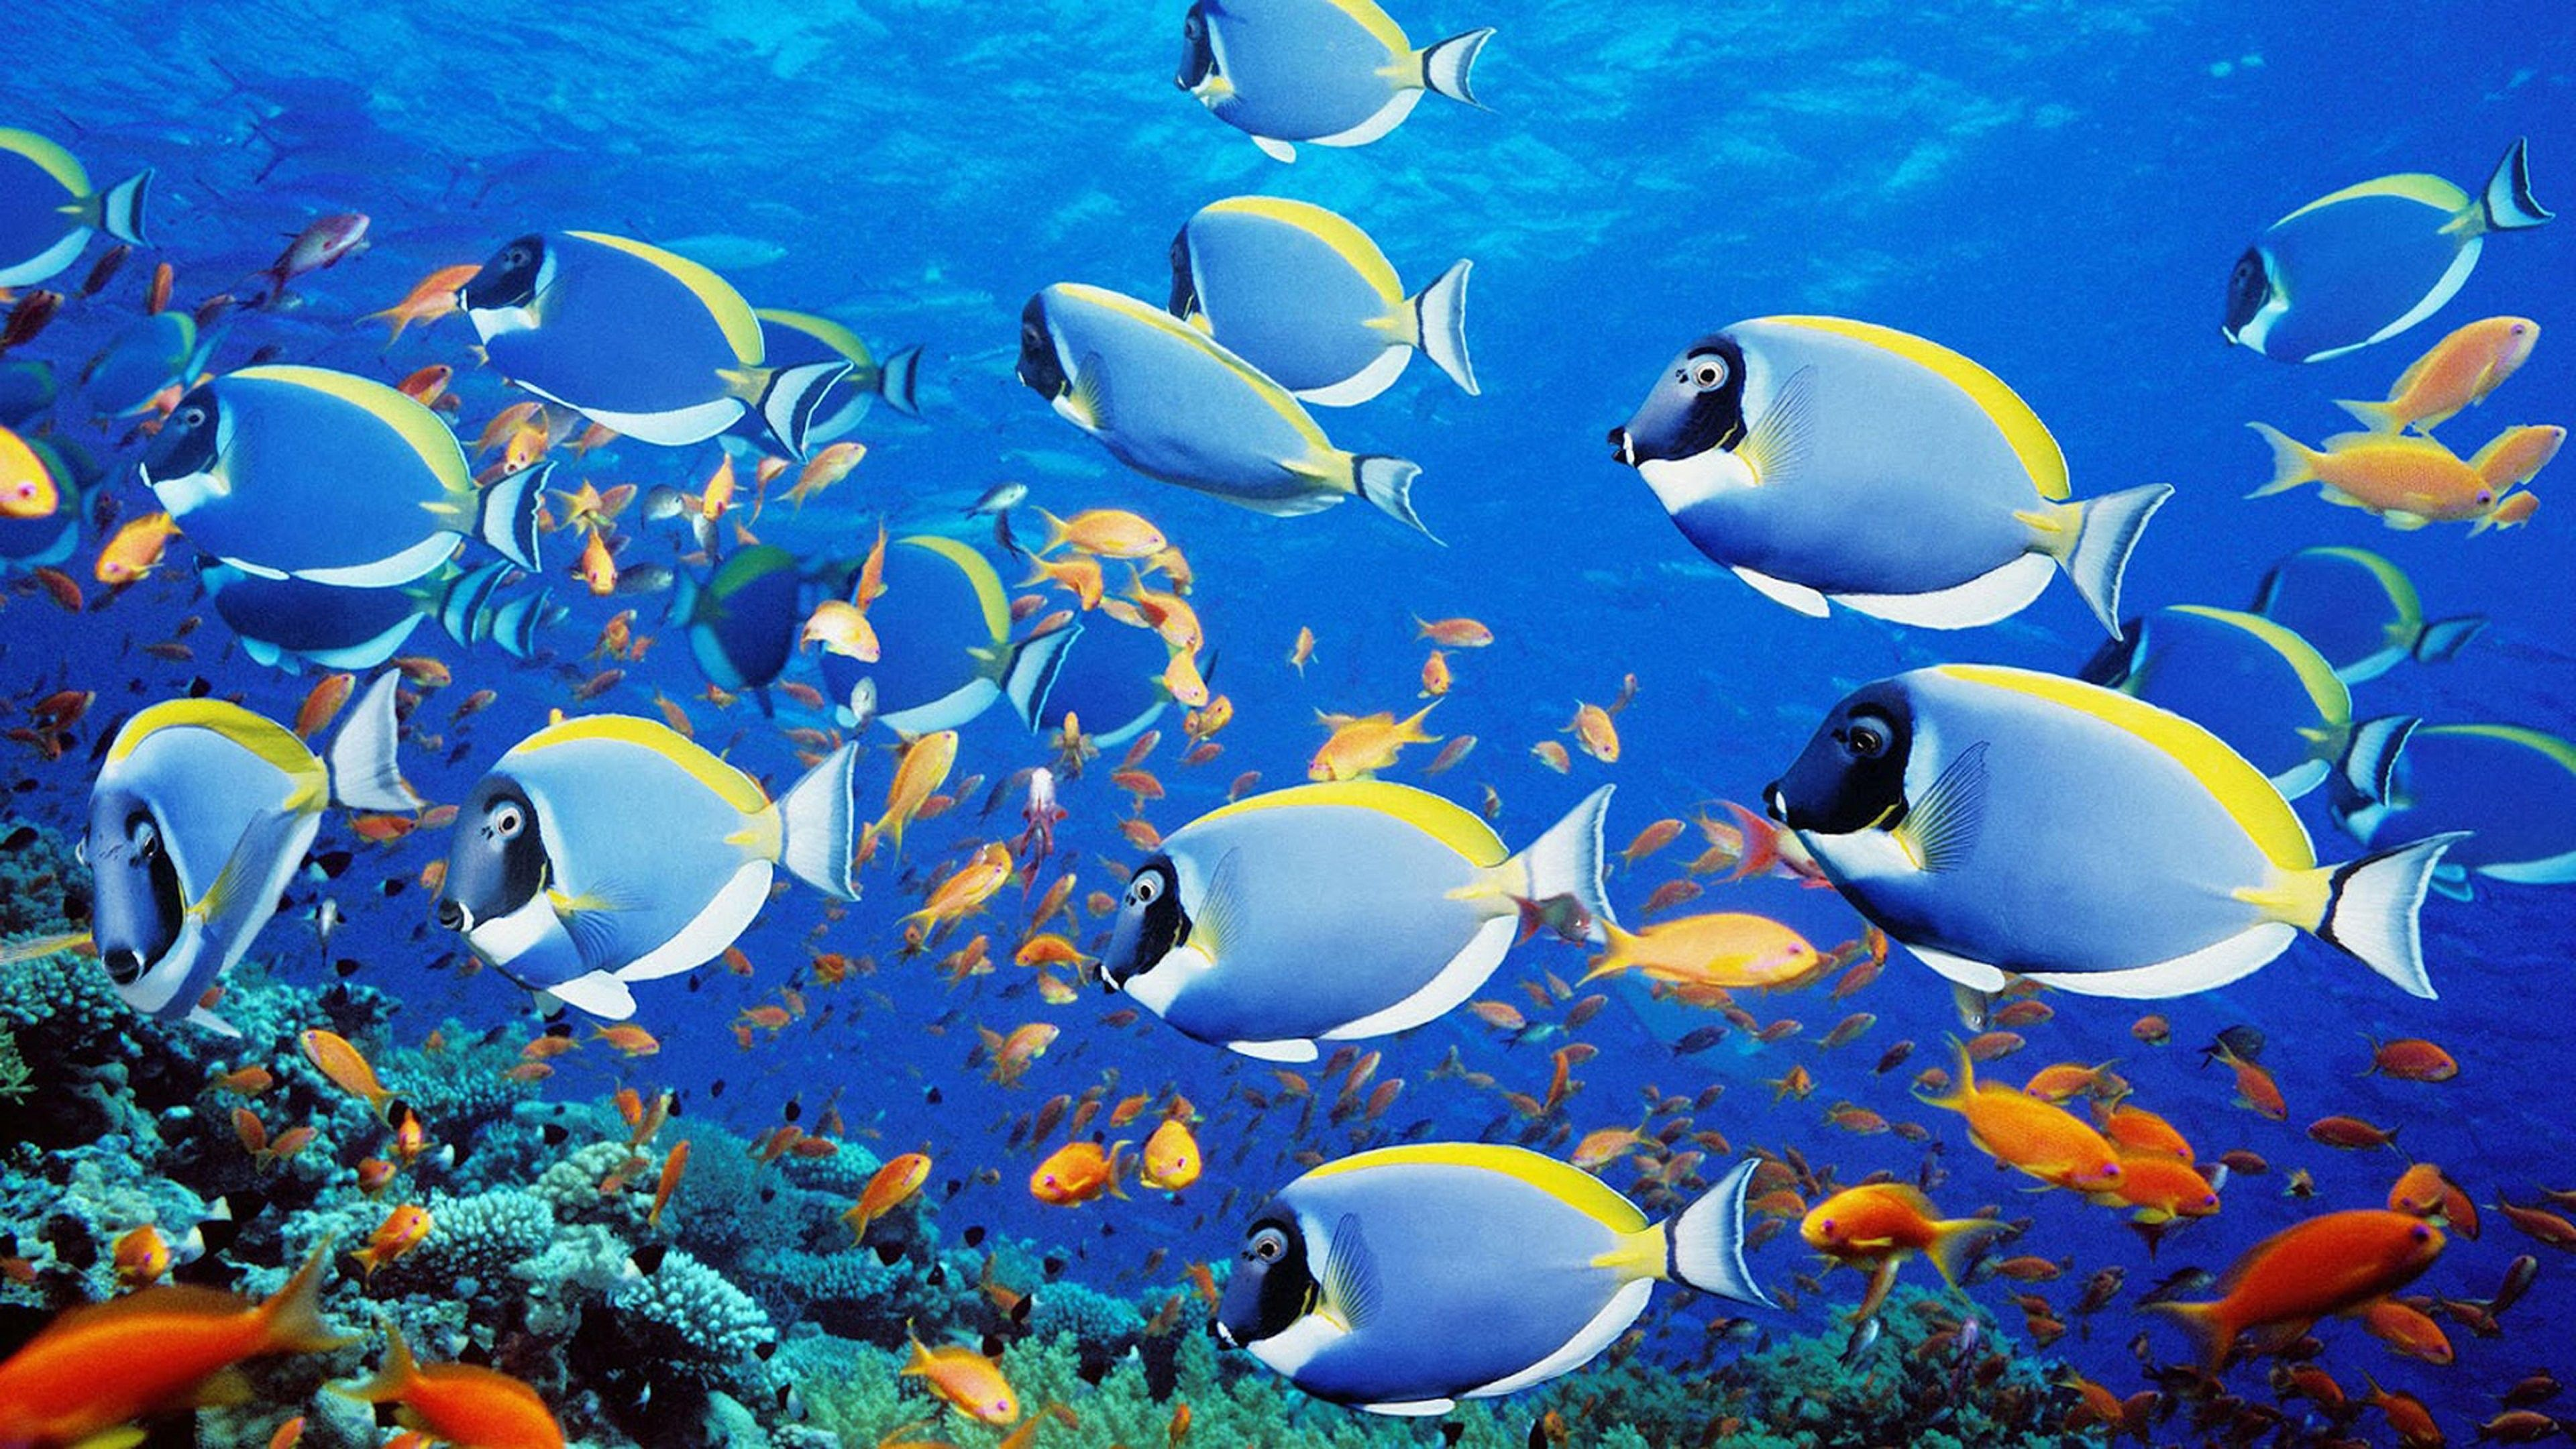 Fish 3840x2160 Wallpapers Top Free Fish 3840x2160 Backgrounds Wallpaperaccess